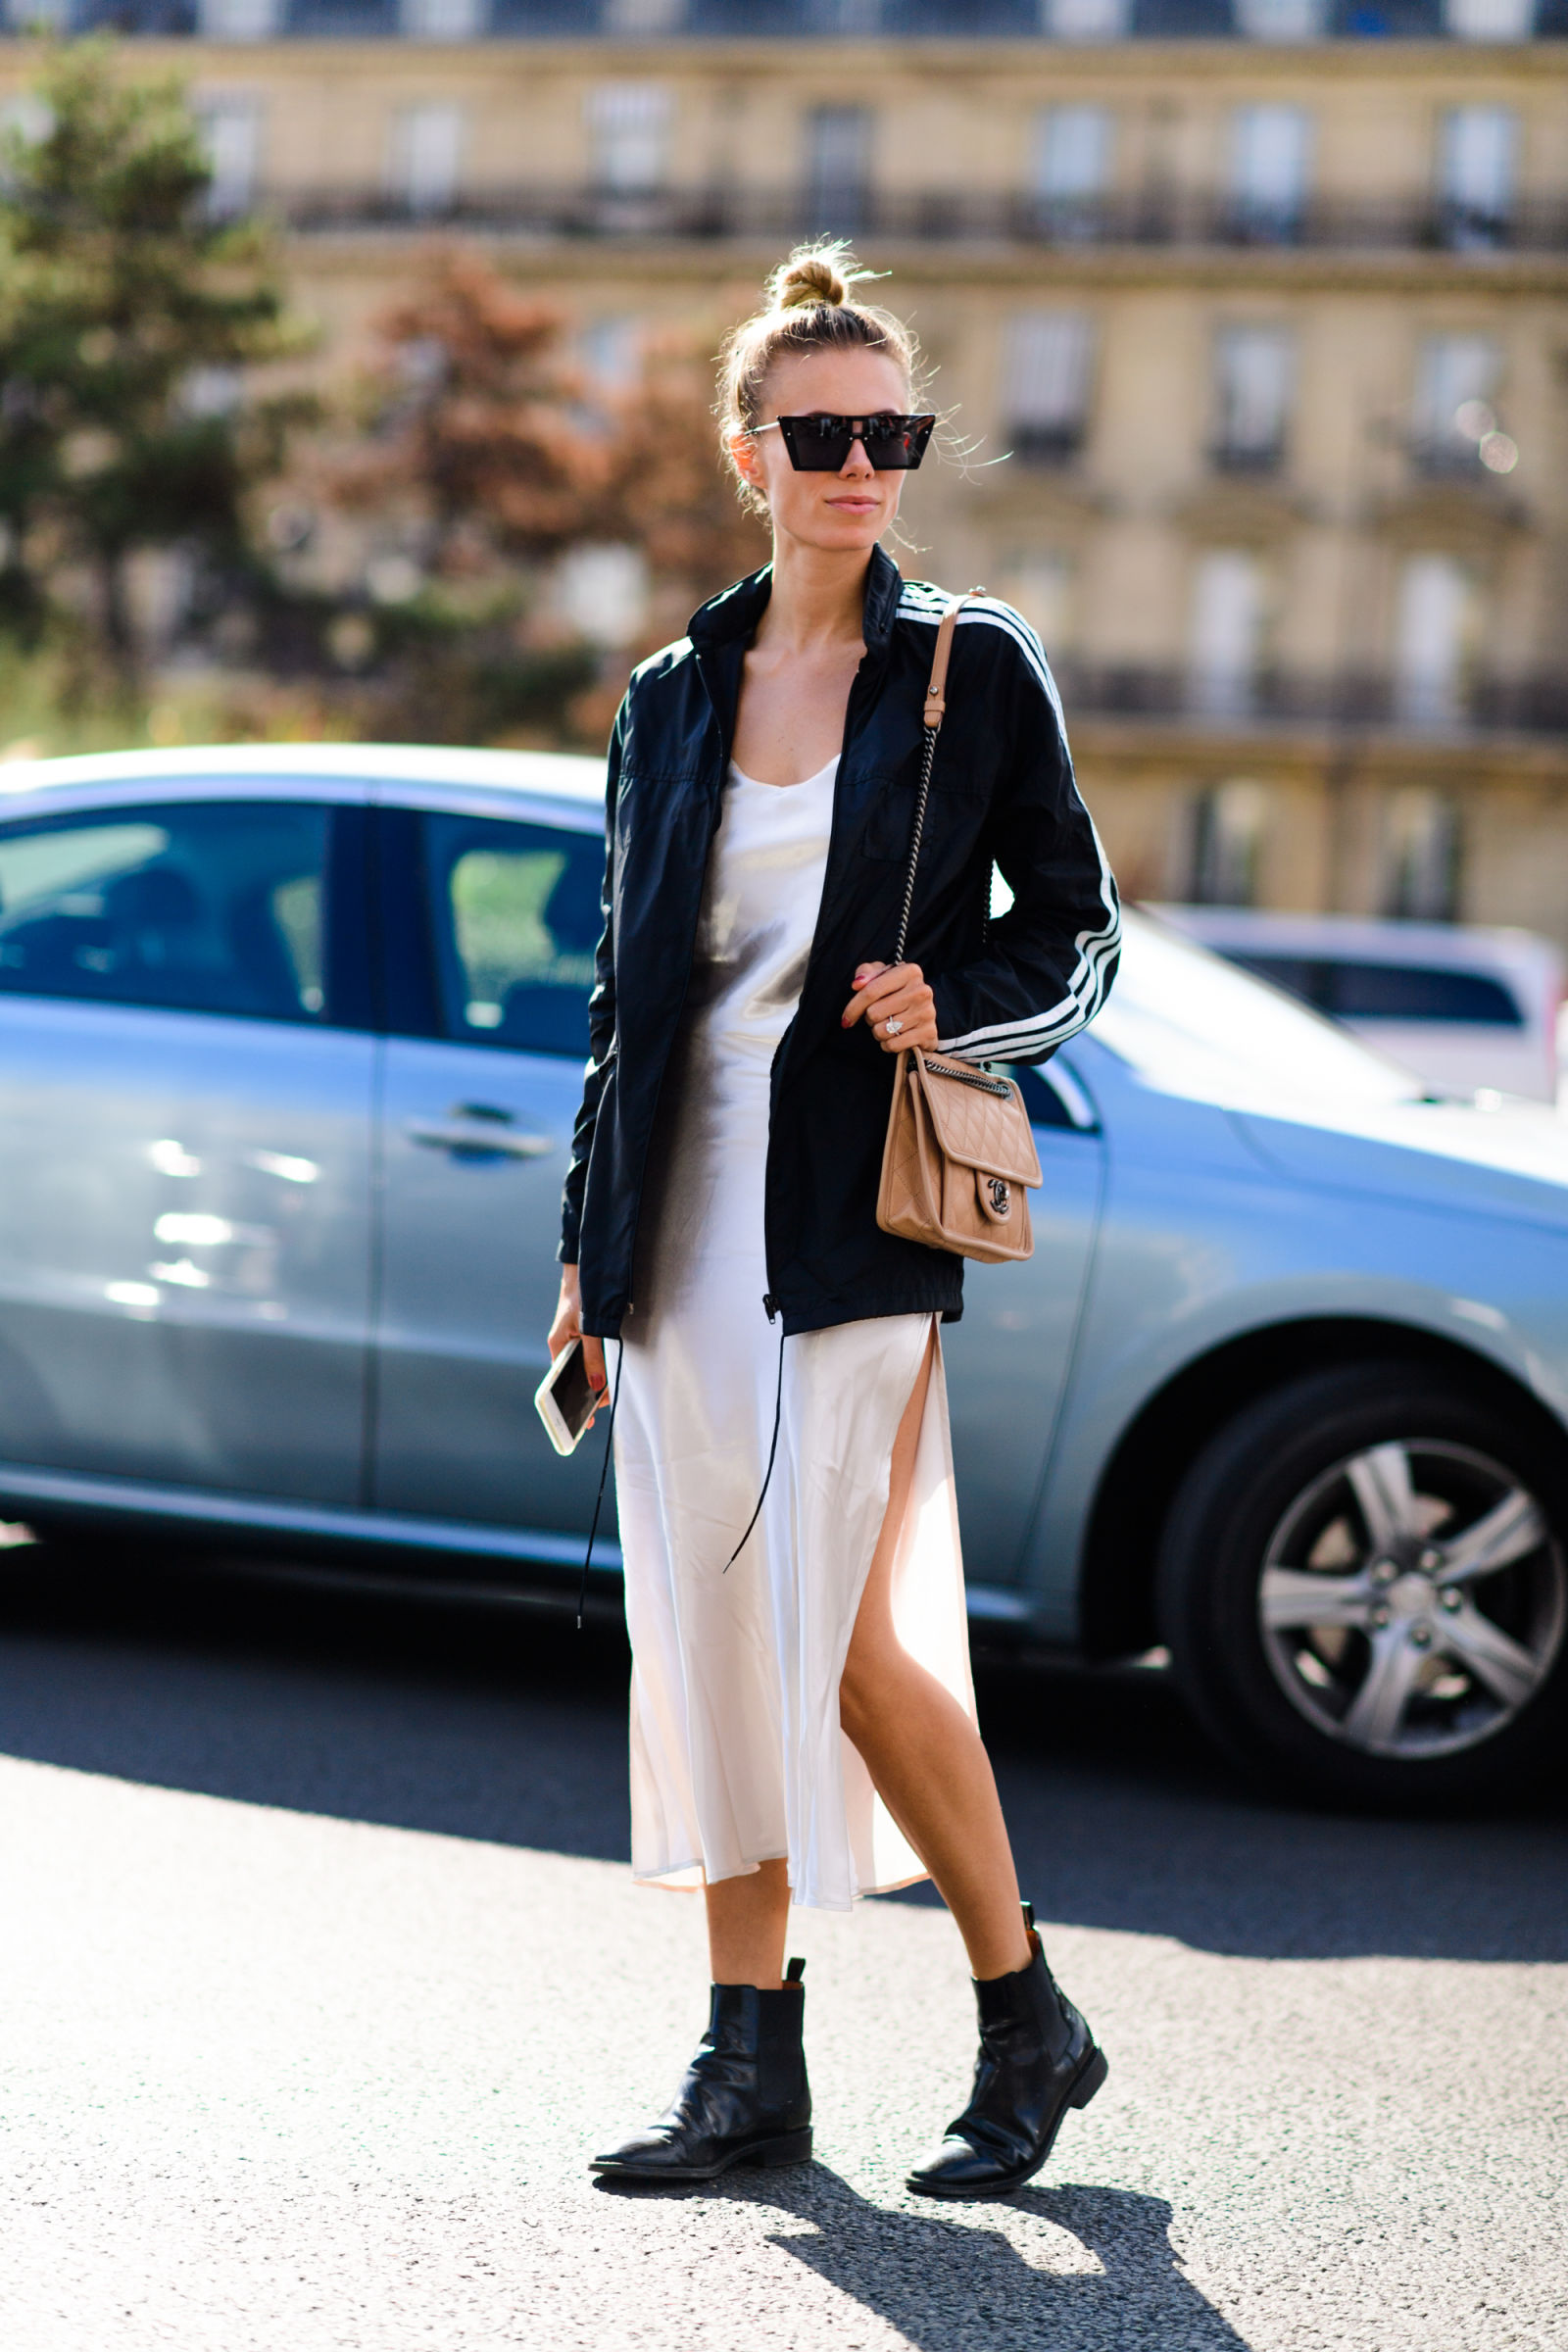 pfw_ss17_day1_102